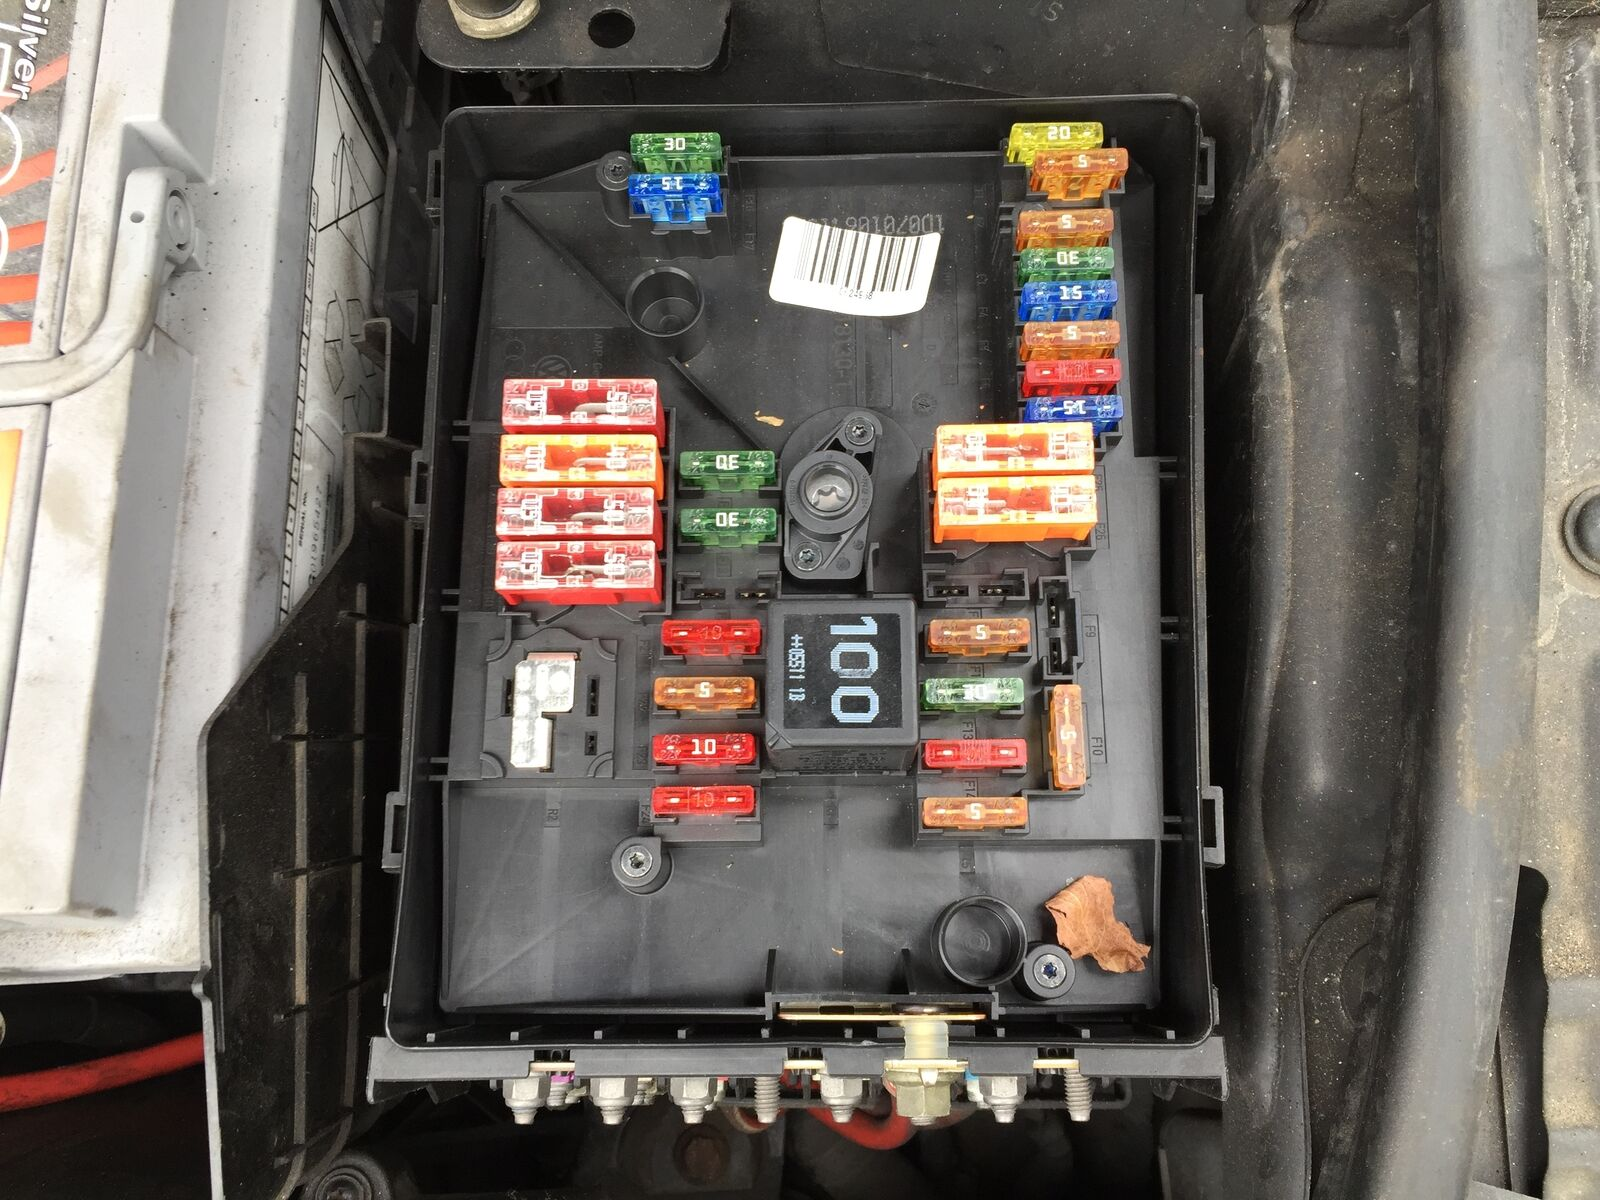 Audi A3 Fuse Box Wiring Diagram Schemes 2002 Audi A4 Fuse Box Diagram Audi  A3 Fuse Box Location